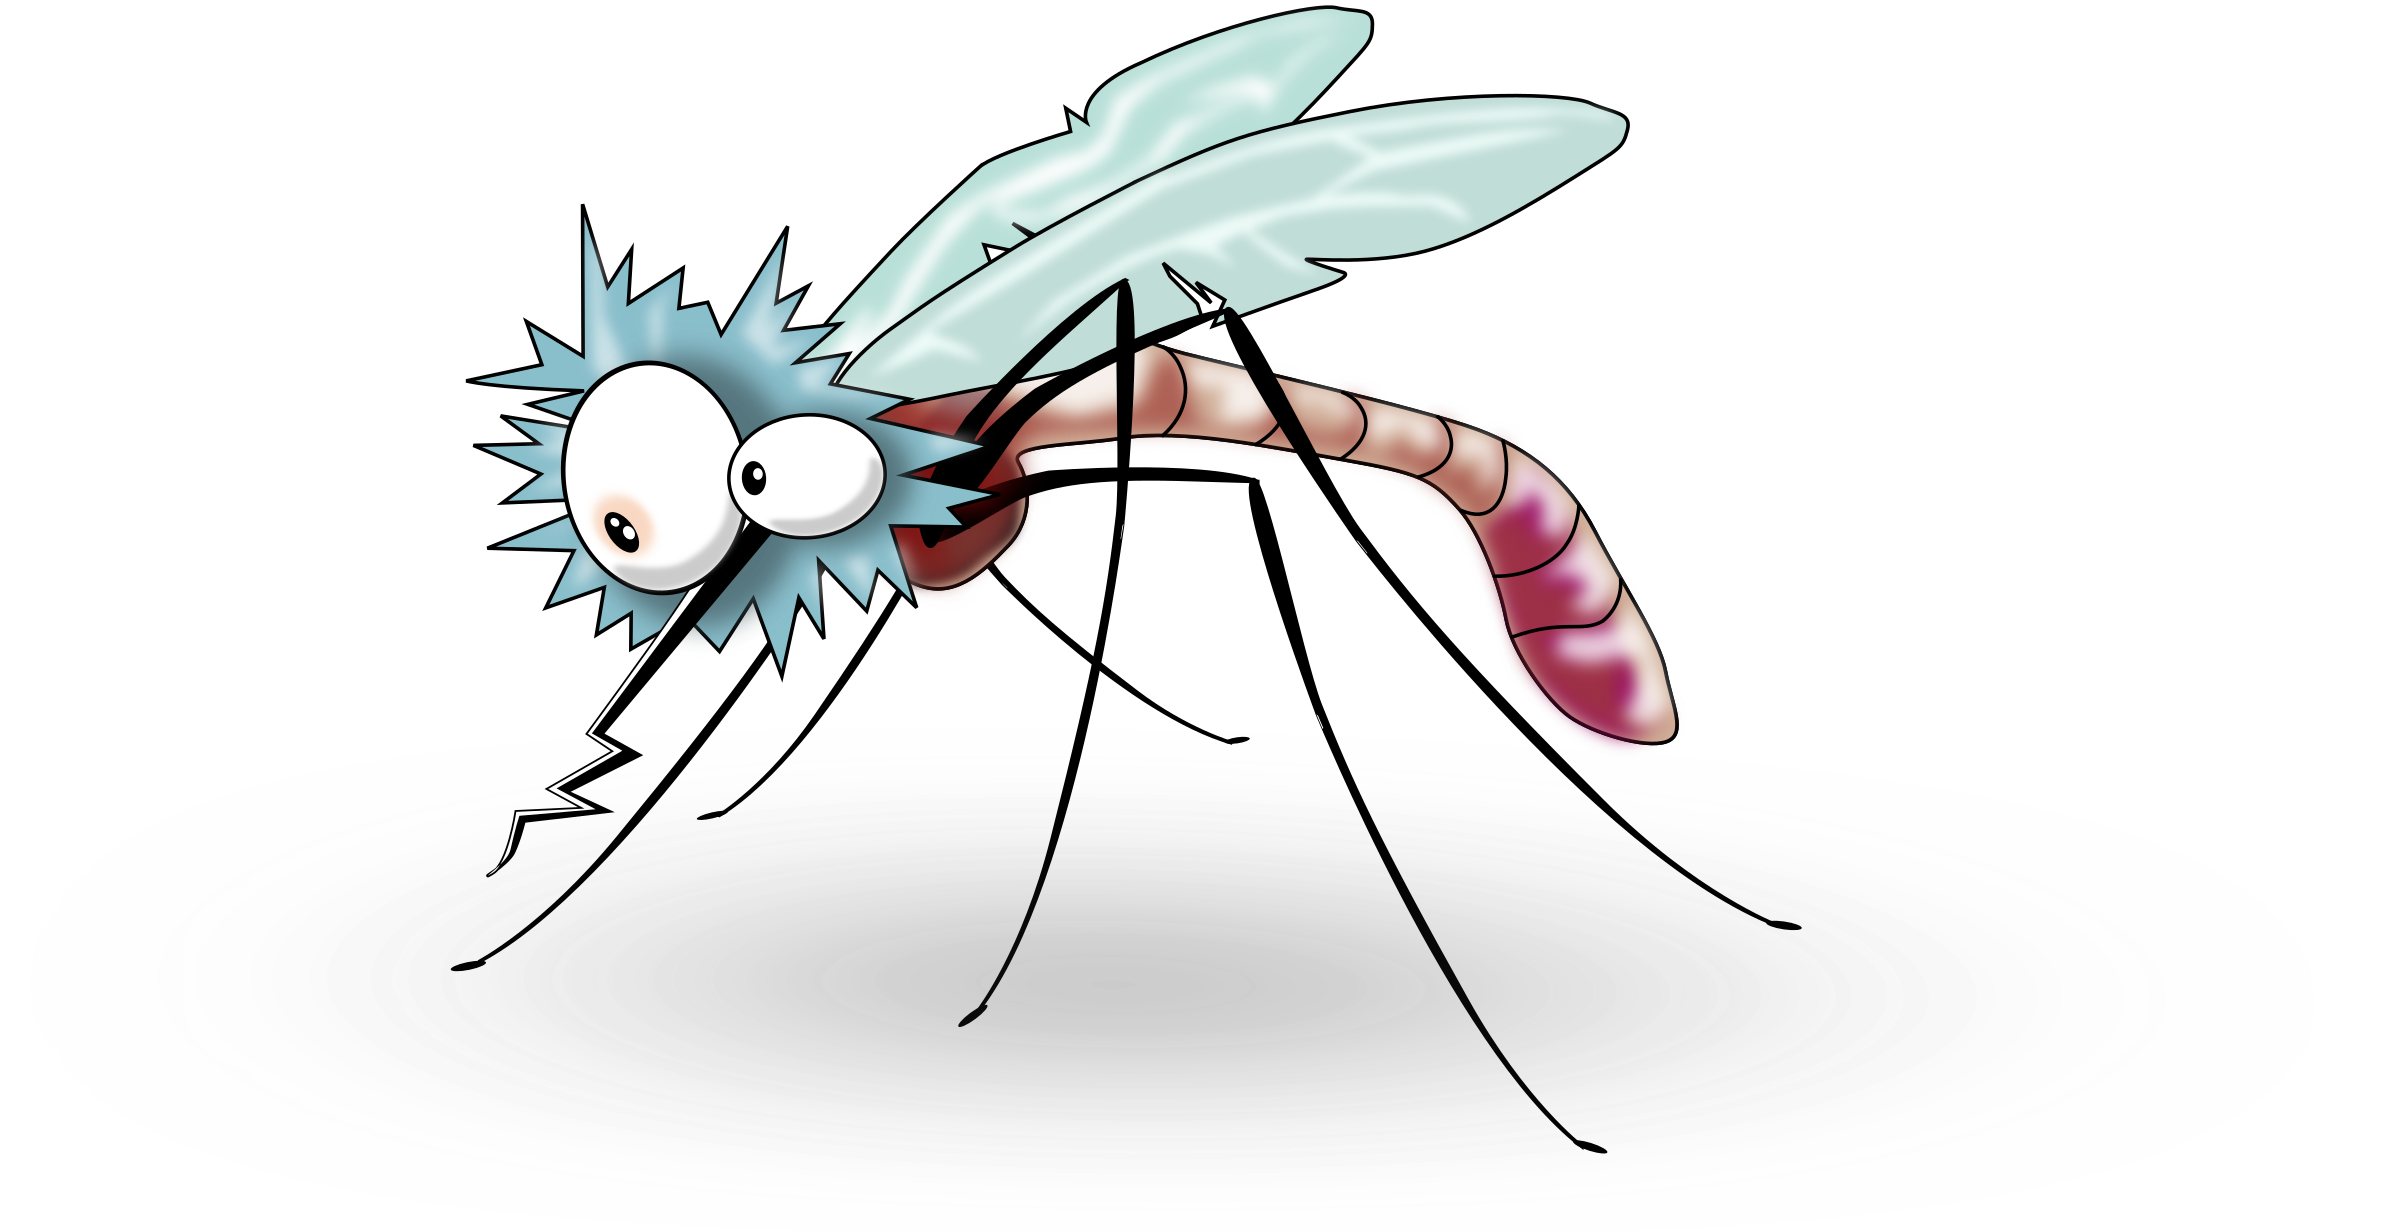 Mask clipart mosquito. Pin by paula rice